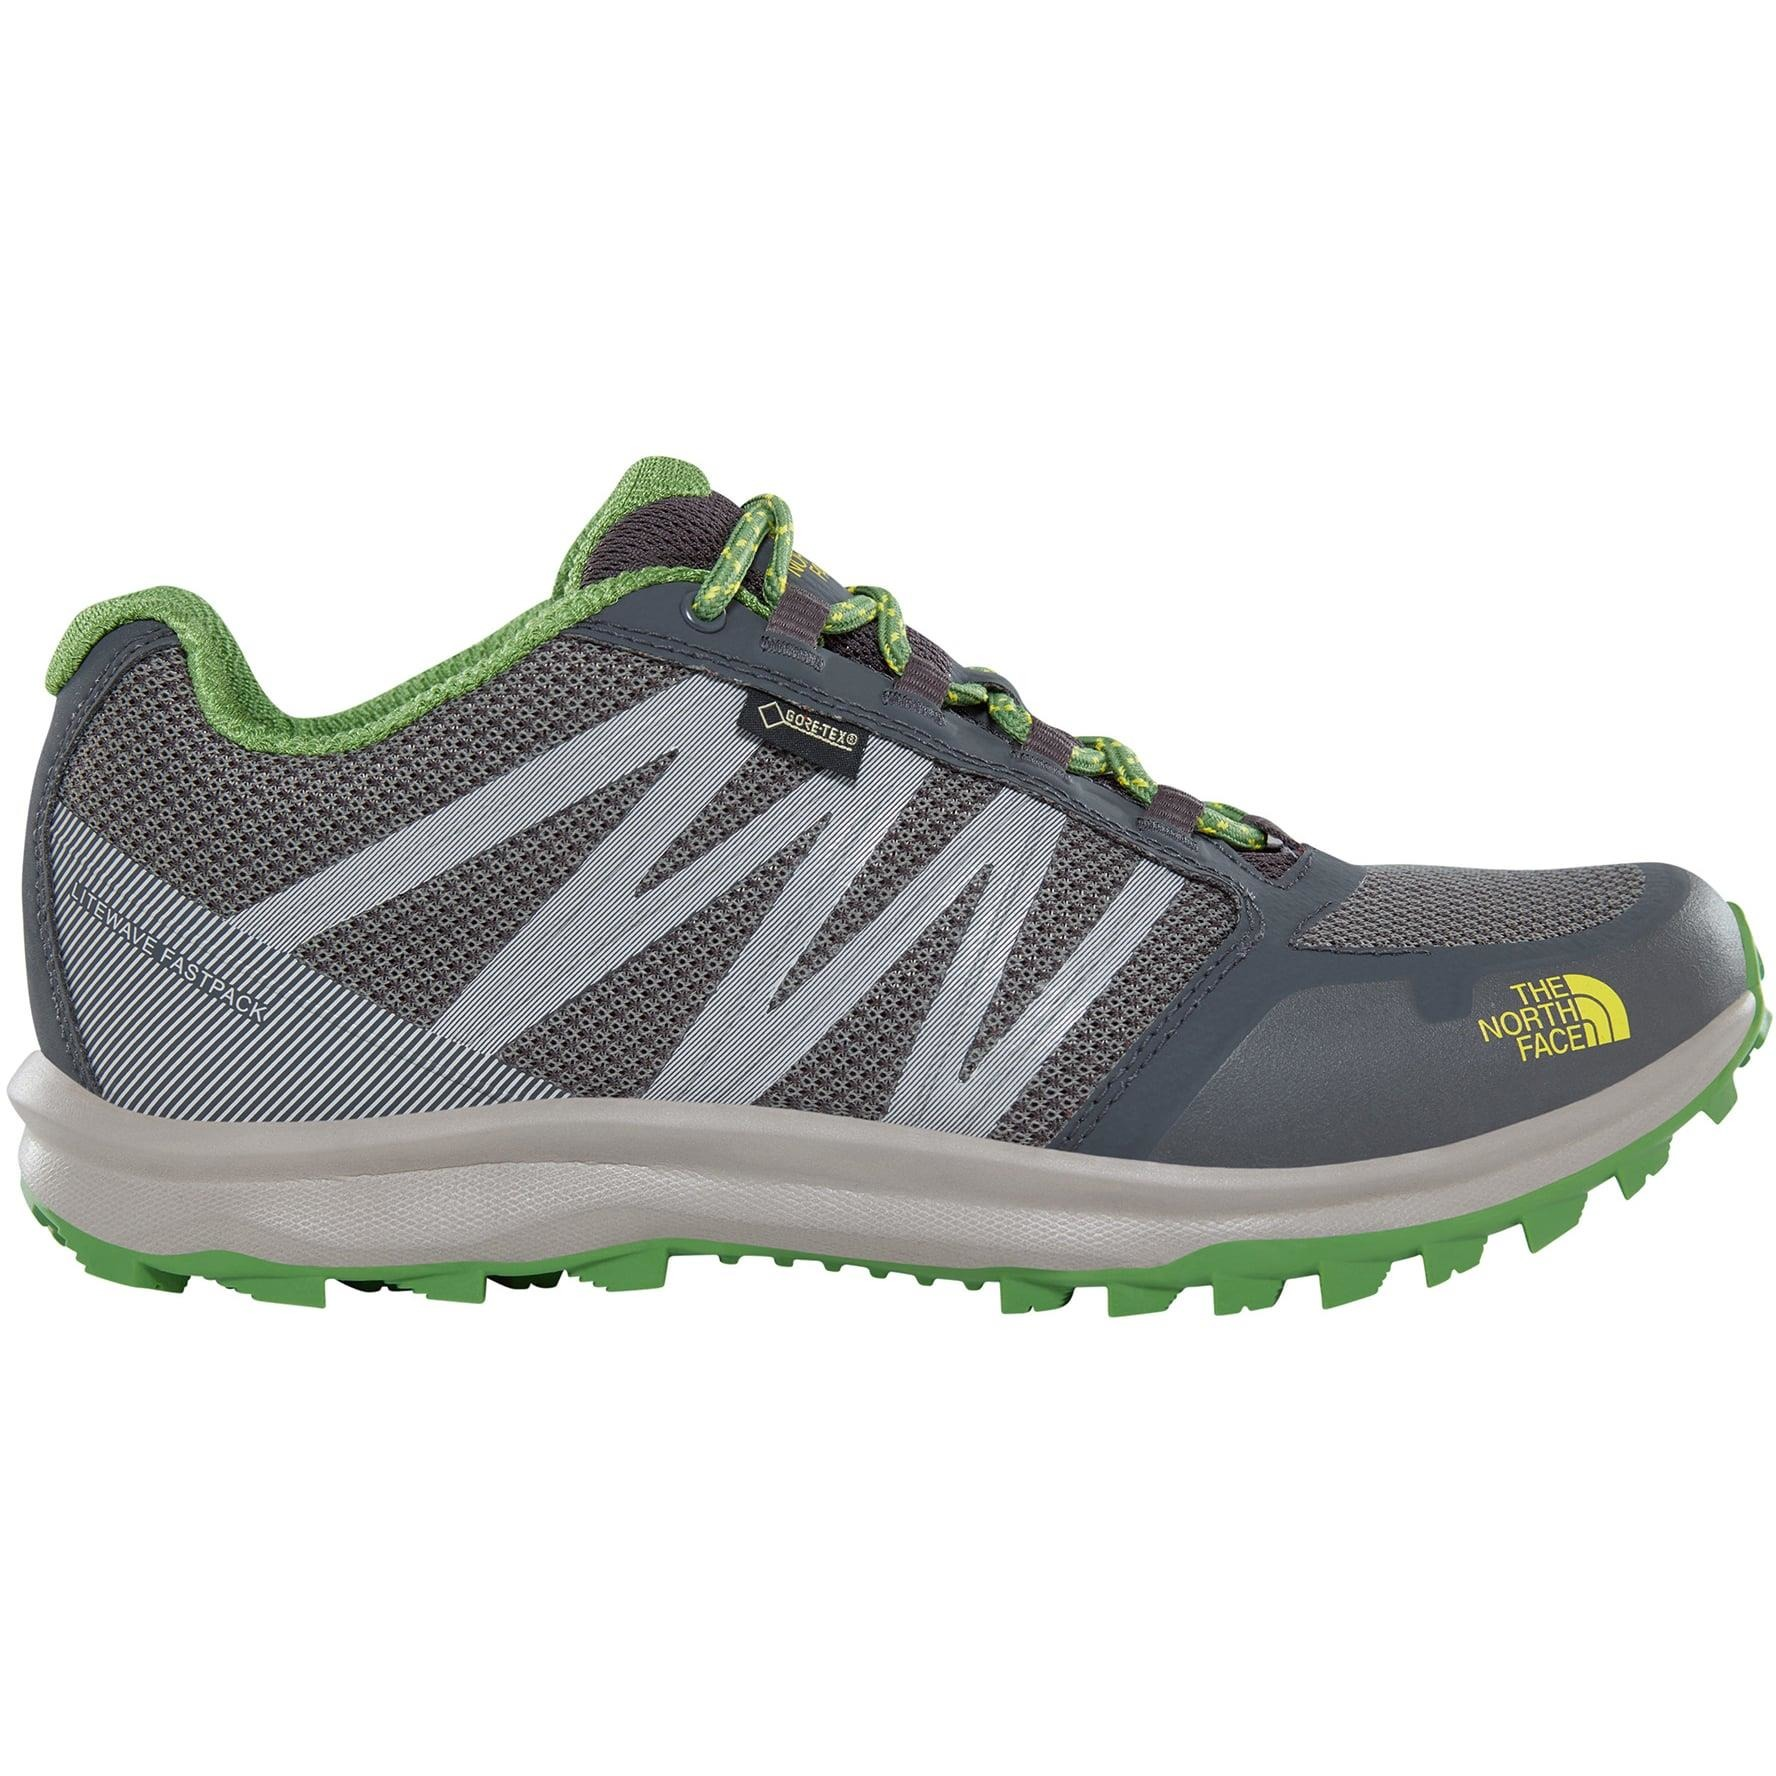 03f2bf09 BUTY THE NORTH FACE LITEWAVE FASTPACK GTX r 40 - 7400757227 ...